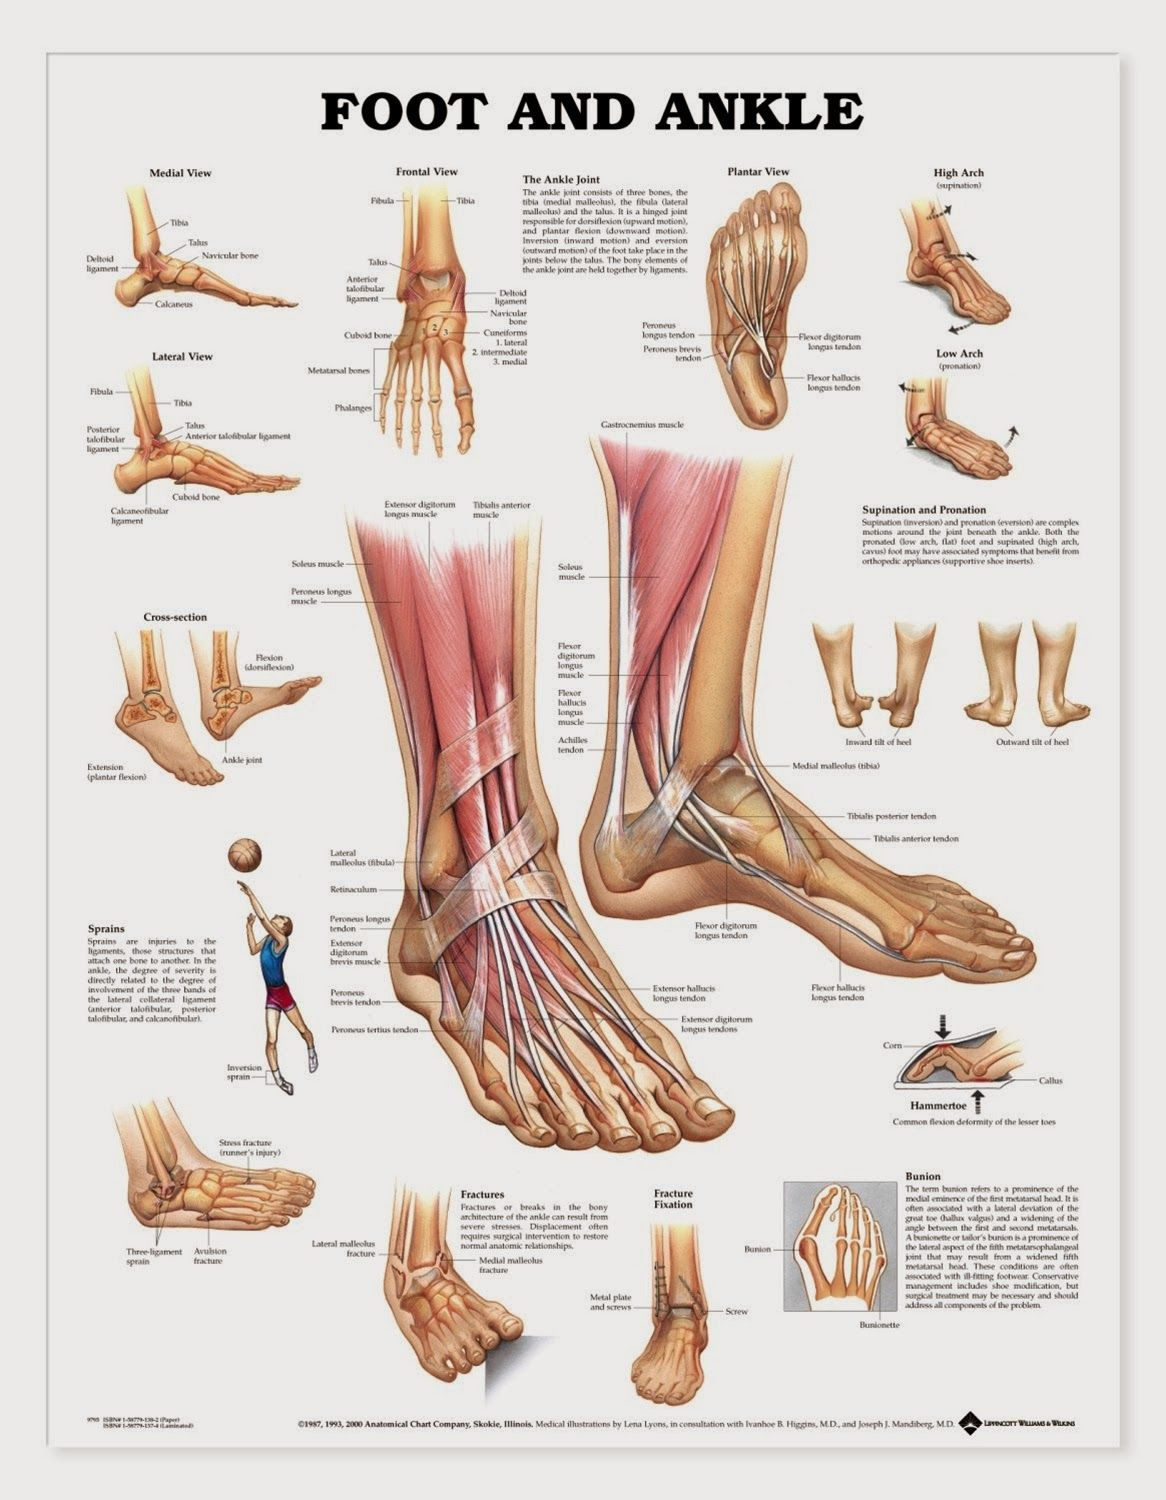 Pin by Sudhir on Home decor | Pinterest | Ankle bones, Bunion and ...